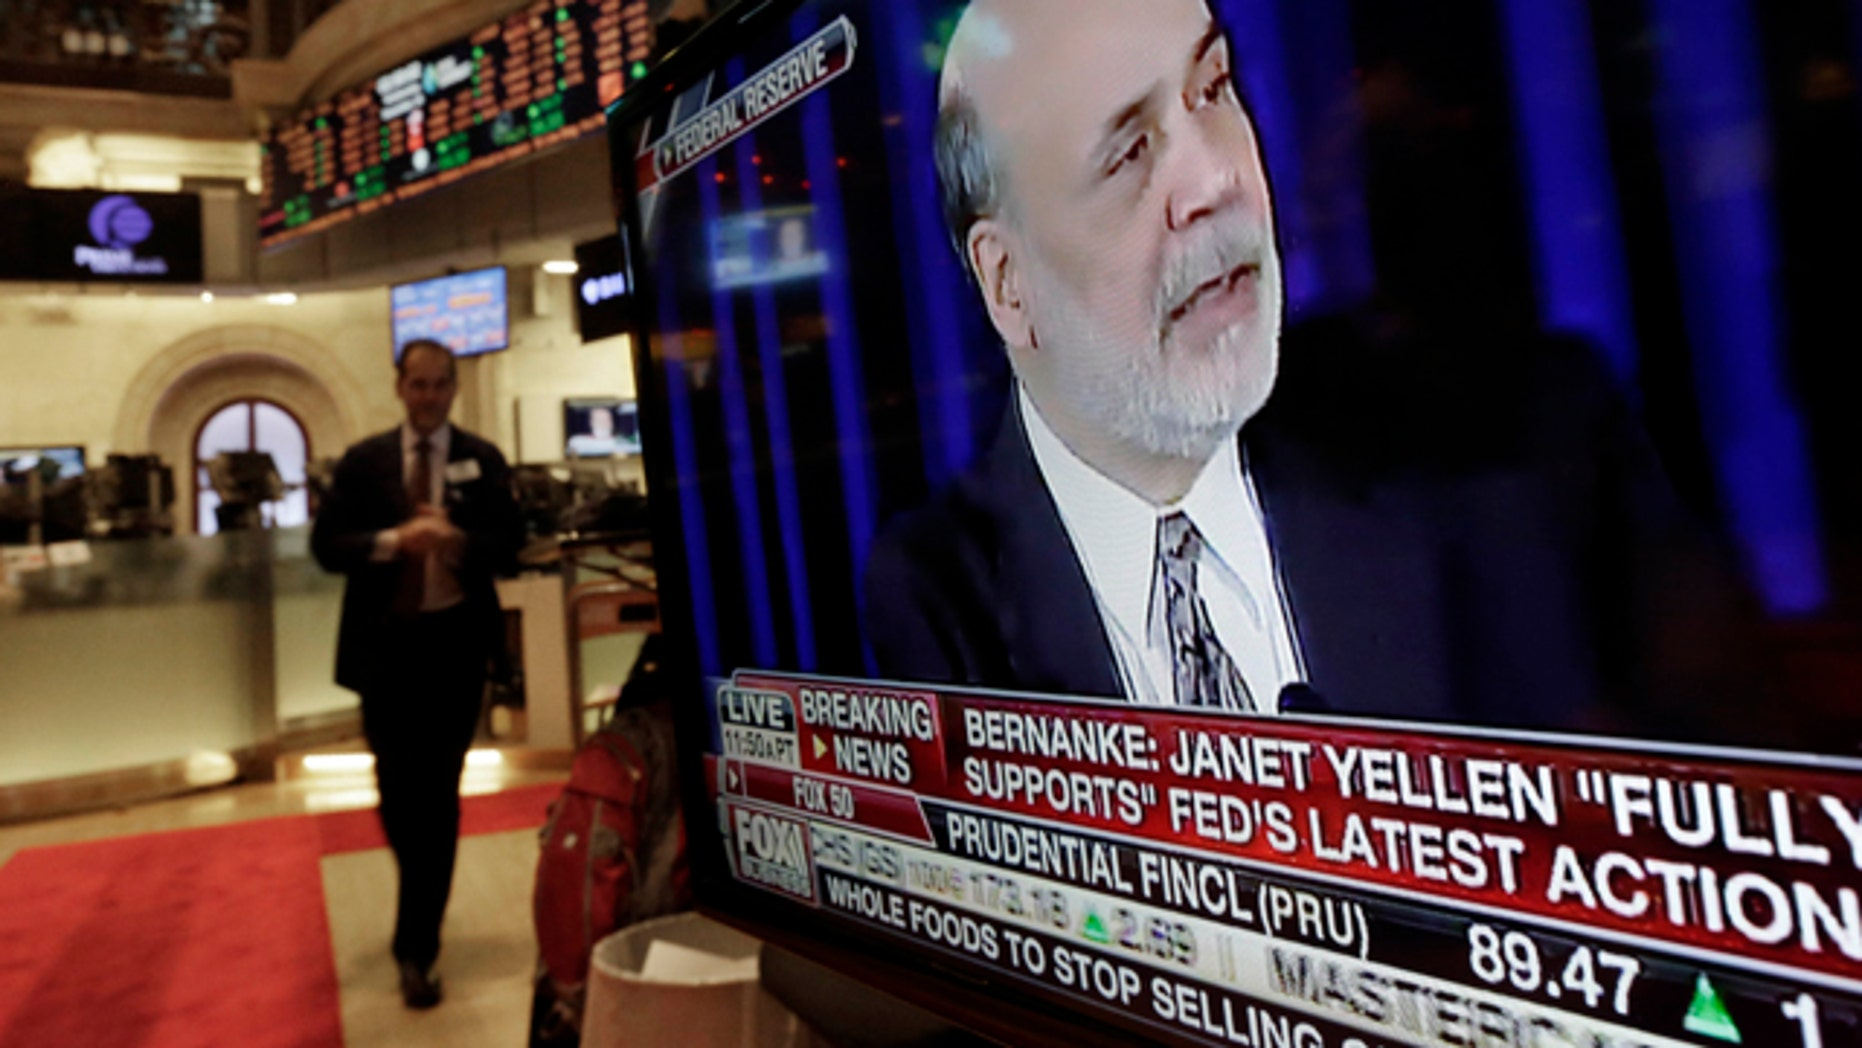 The news conference of Federal Reserve Chairman Ben Bernanke appears on a television screen at a trading post on the floor of the New York Stock Exchange, Wednesday, Dec. 18, 2013. The Federal Reserve has decided to reduce its stimulus for the U.S. economy because the job market has shown steady improvement. The Fed will trim its $85 billion a month in bond purchases by $10 billion starting in January.  (AP Photo/Richard Drew)